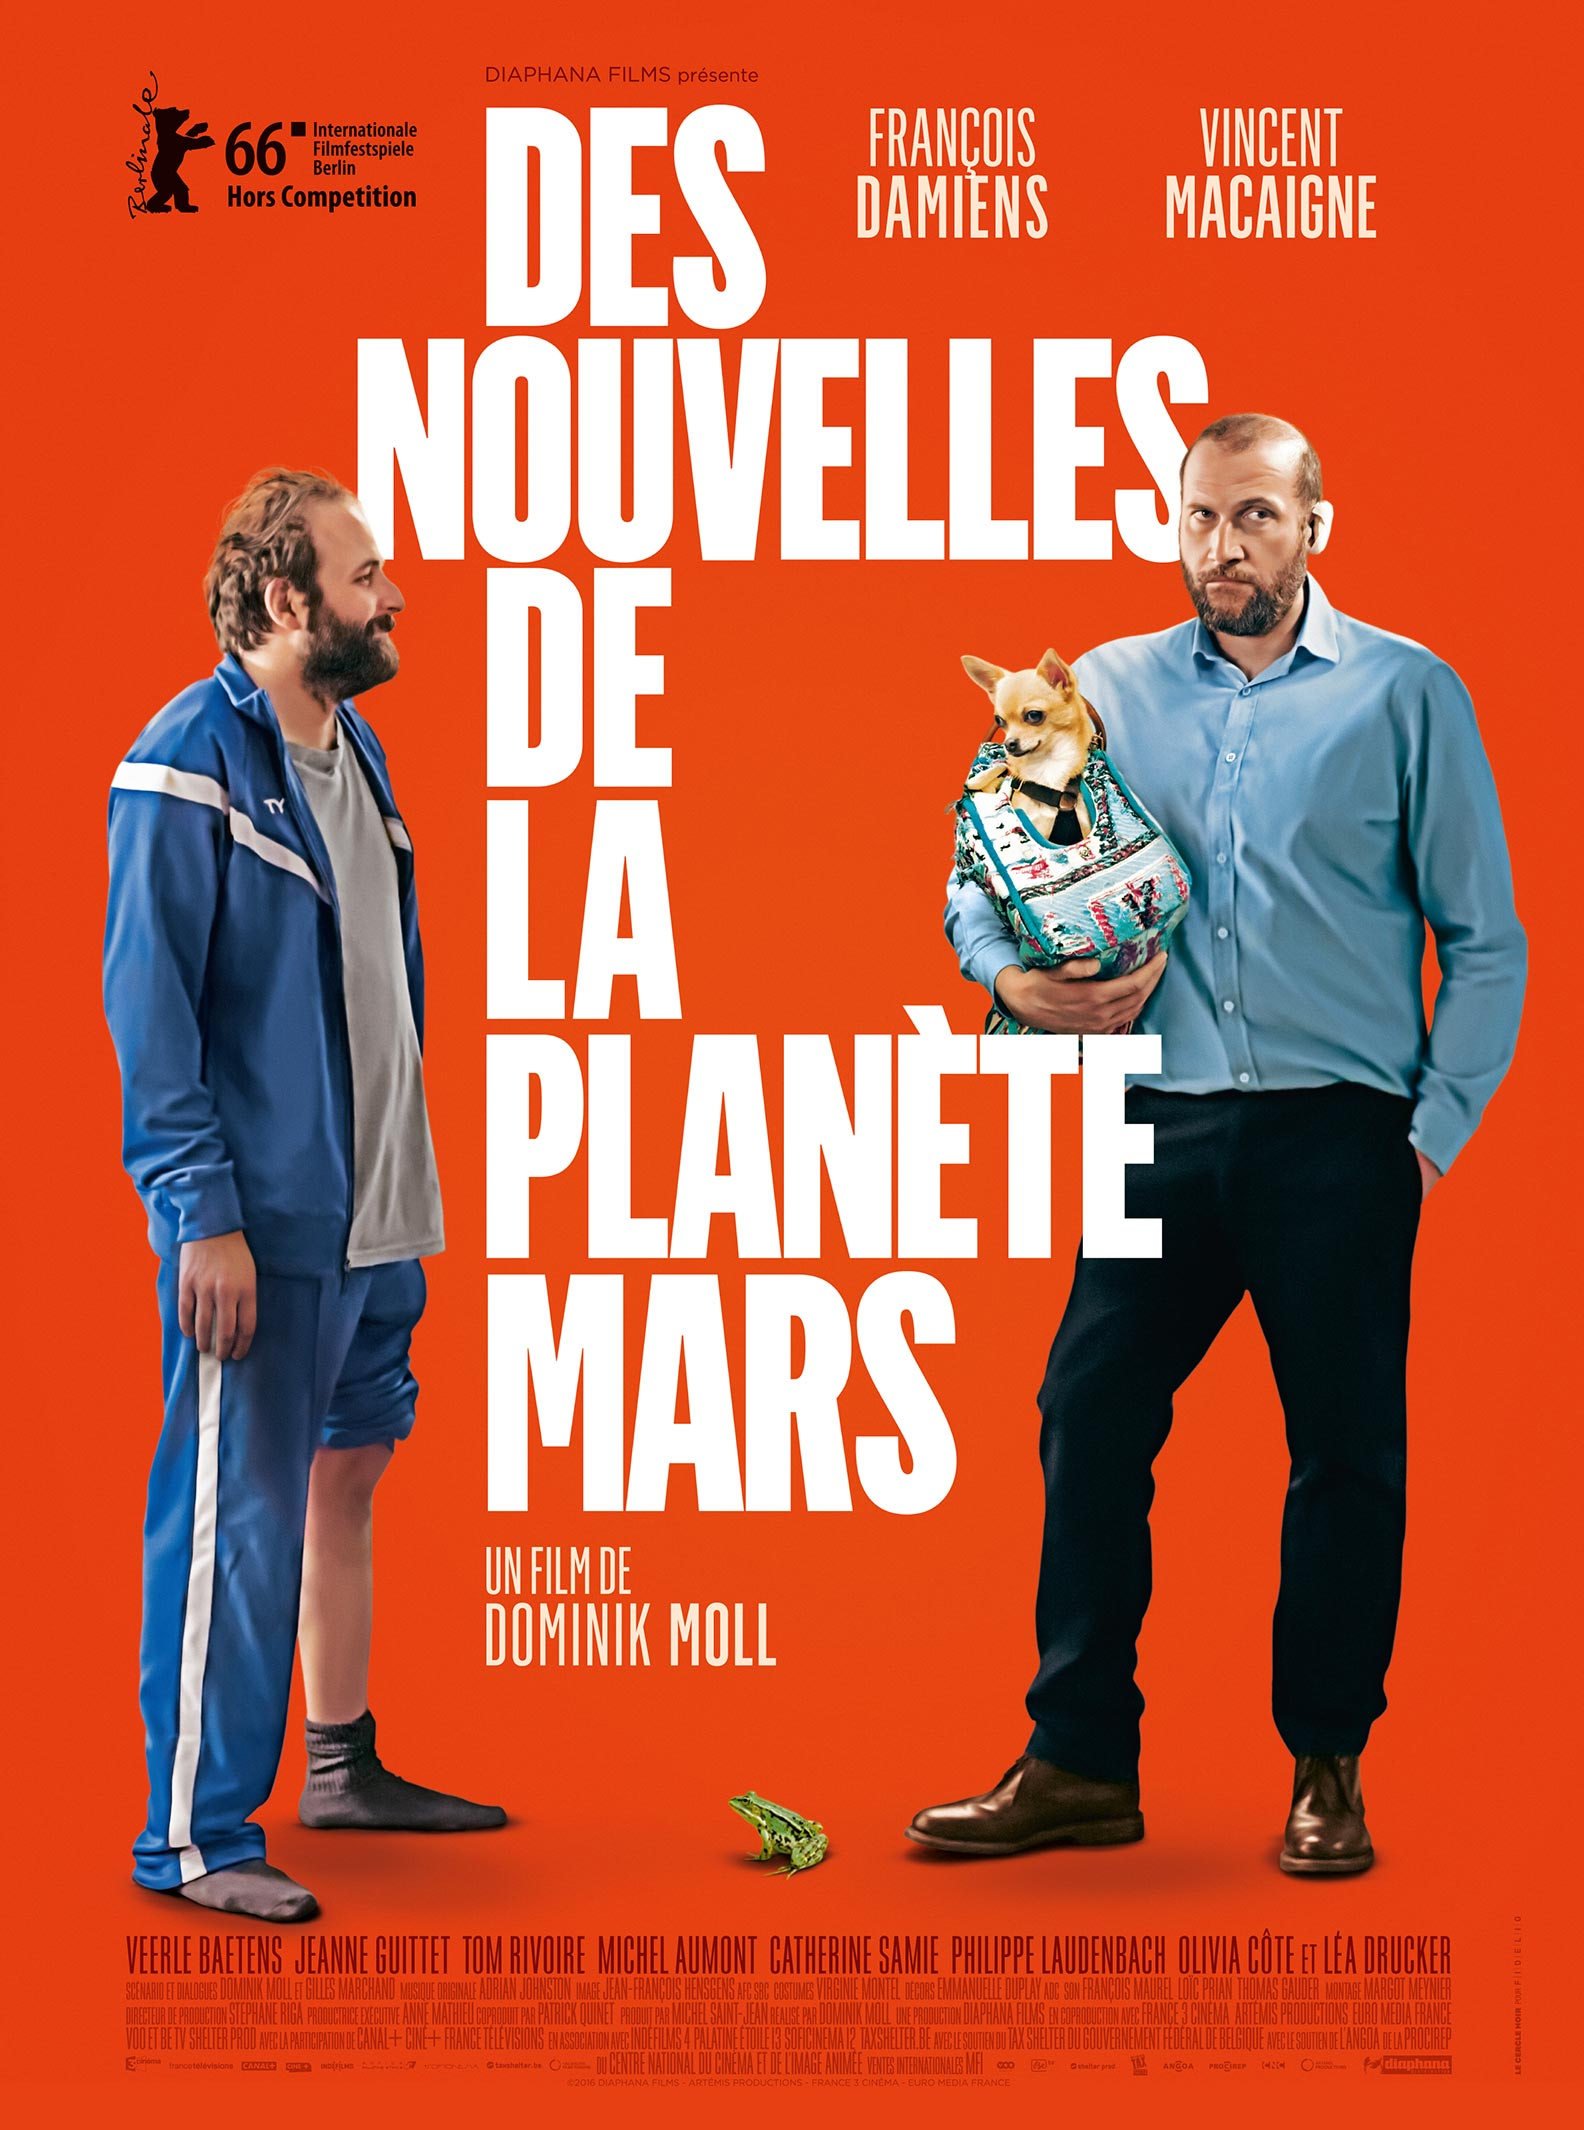 News from Planet Mars Poster #1